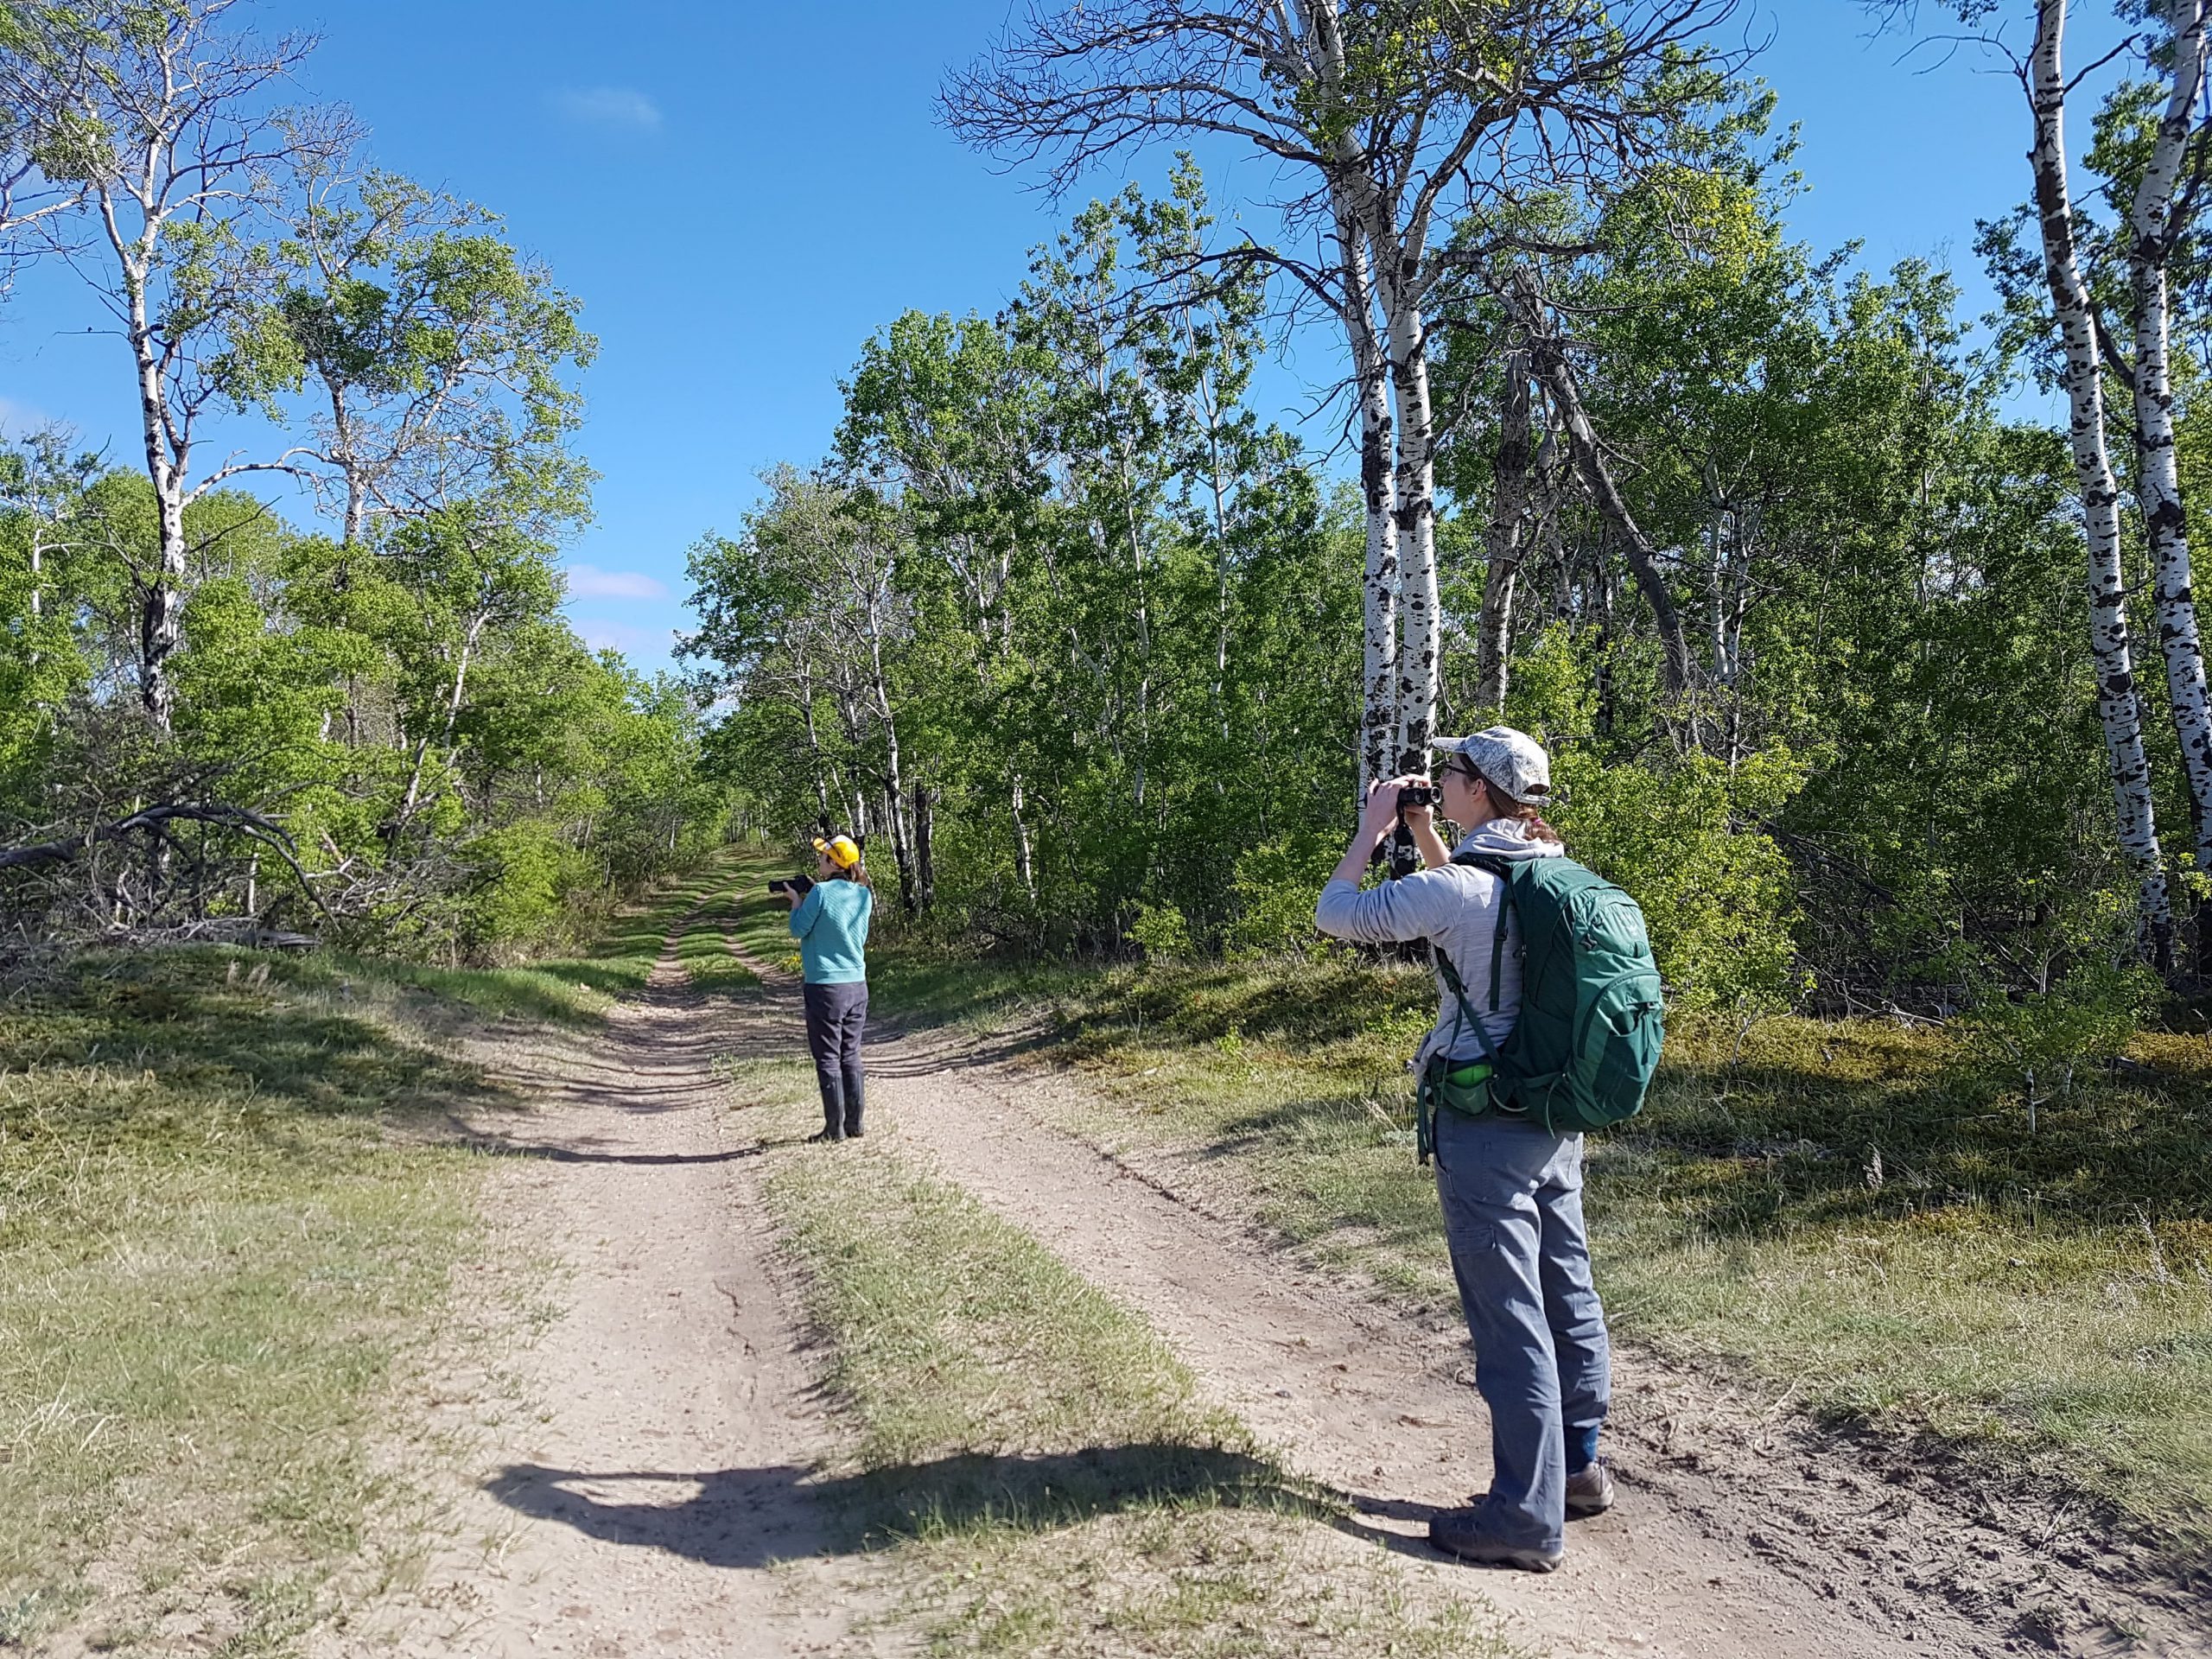 volunteers looking through binoculars on a two-track road in a forest